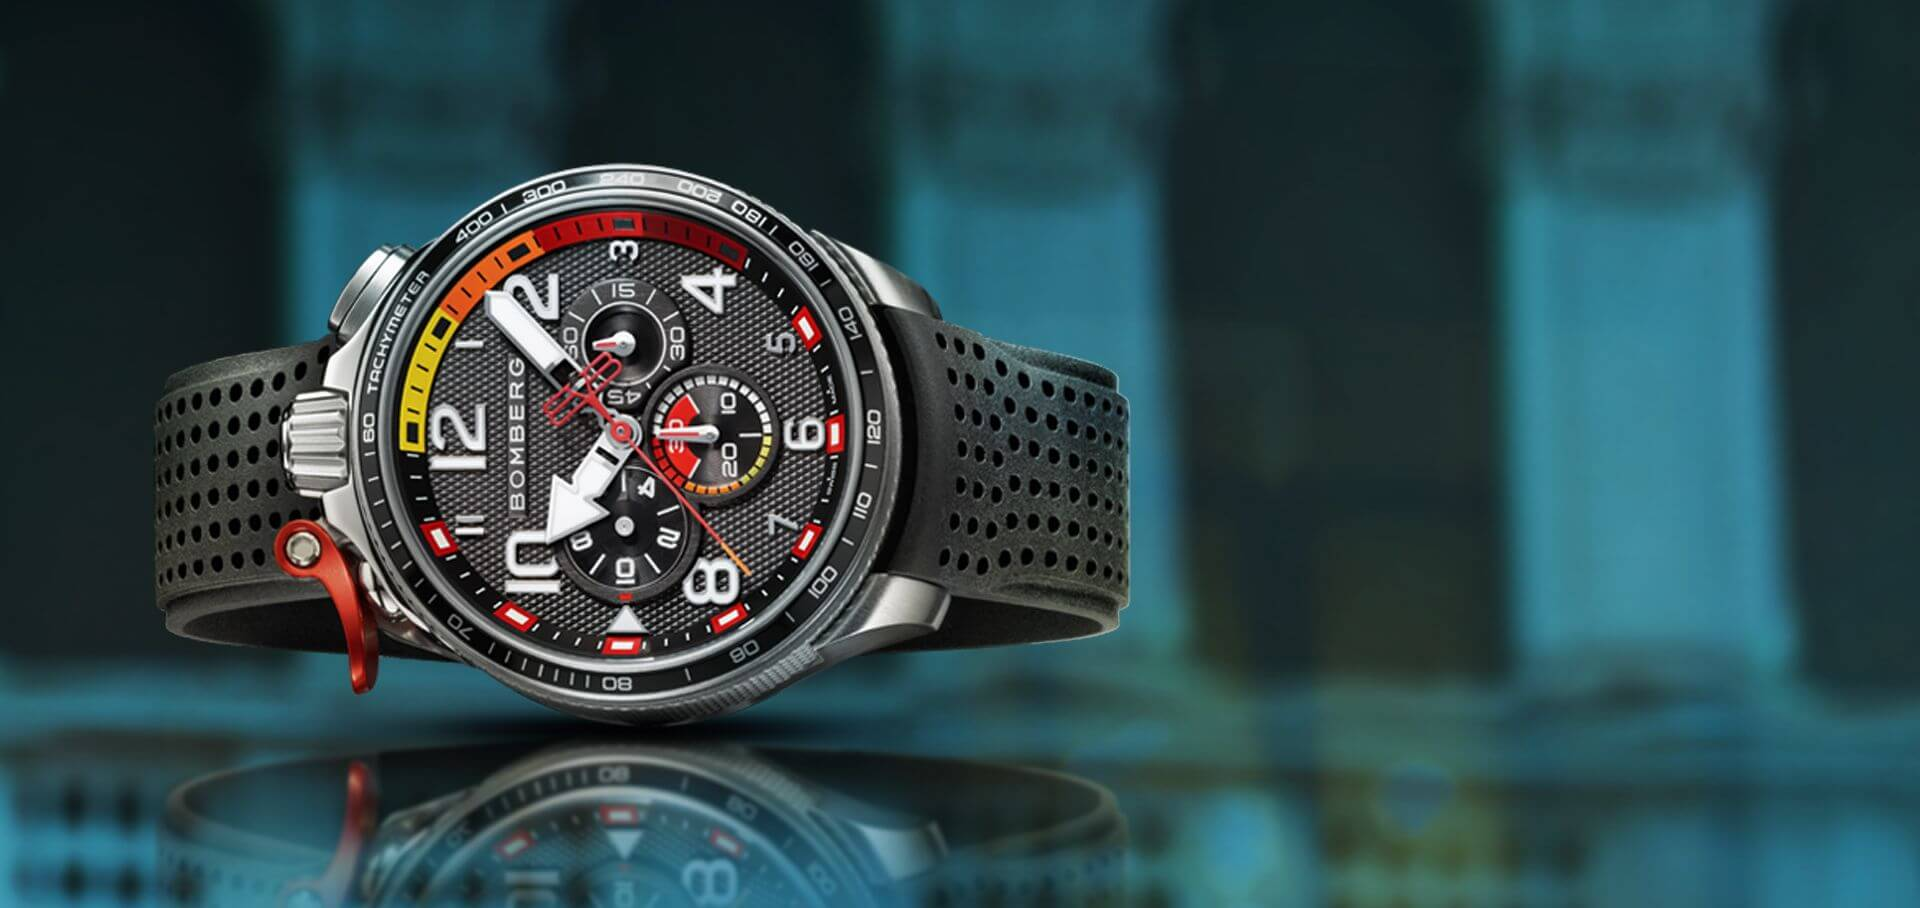 Bomberg Watches: Swiss watches for a new generation of watch enthusiasts